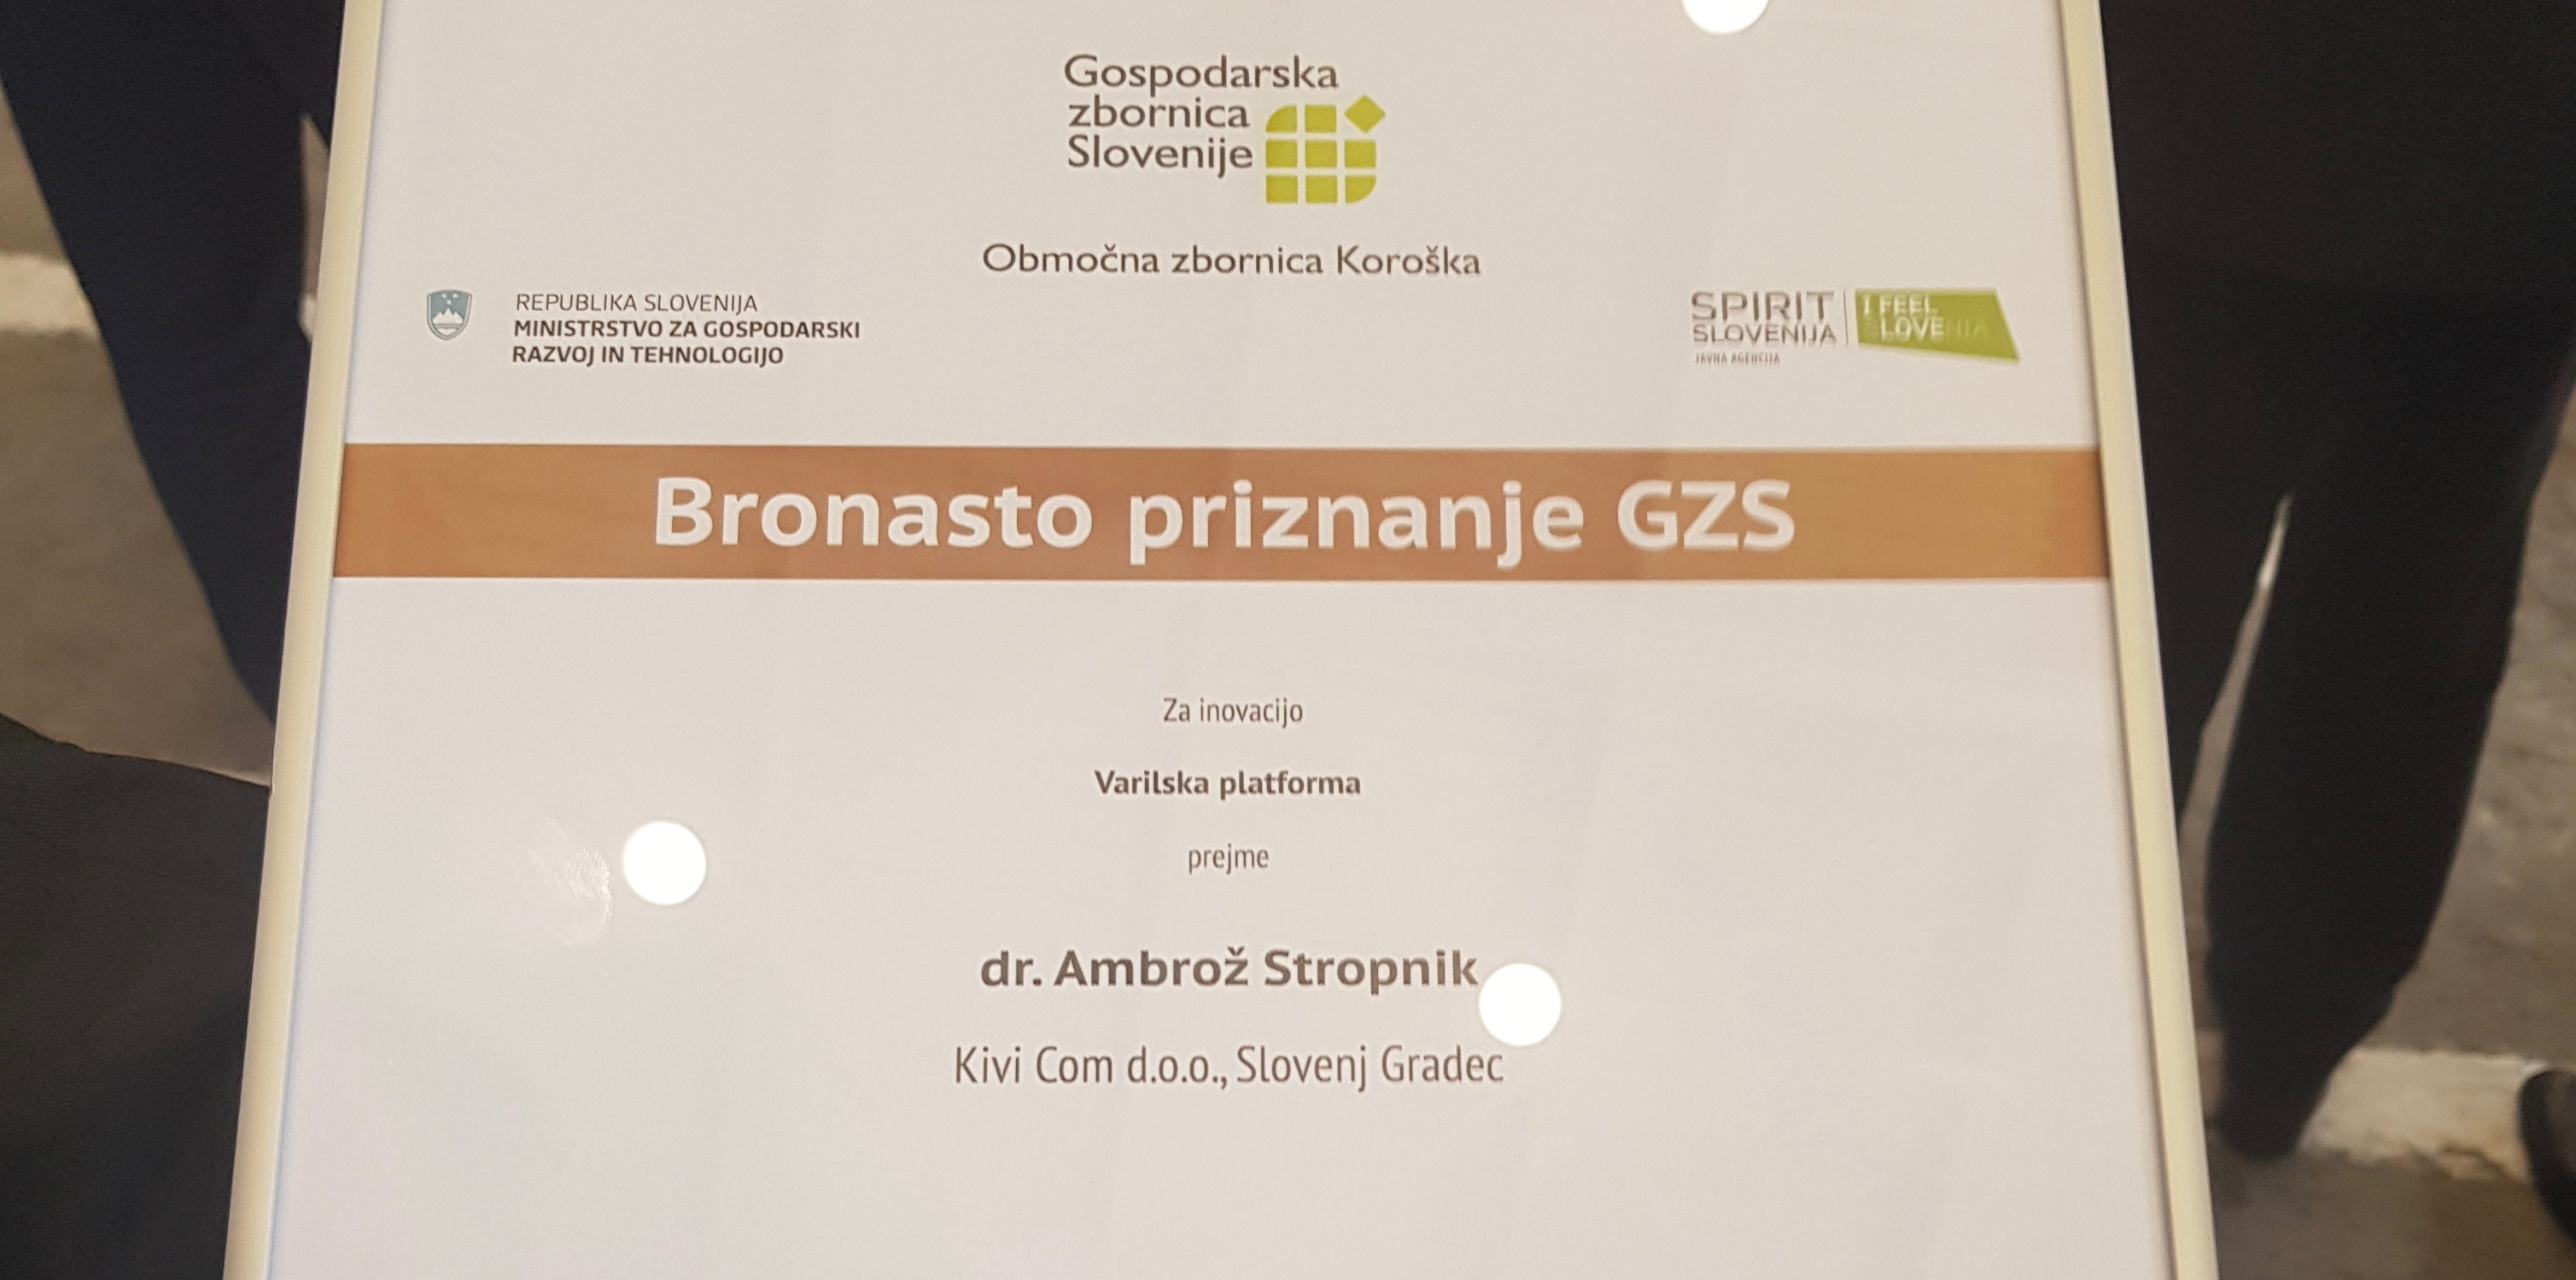 Bronze Medal Recognition by Slovenian Chamber of Industry and Crafts, for achievement in: Innovation  - Welding Platform